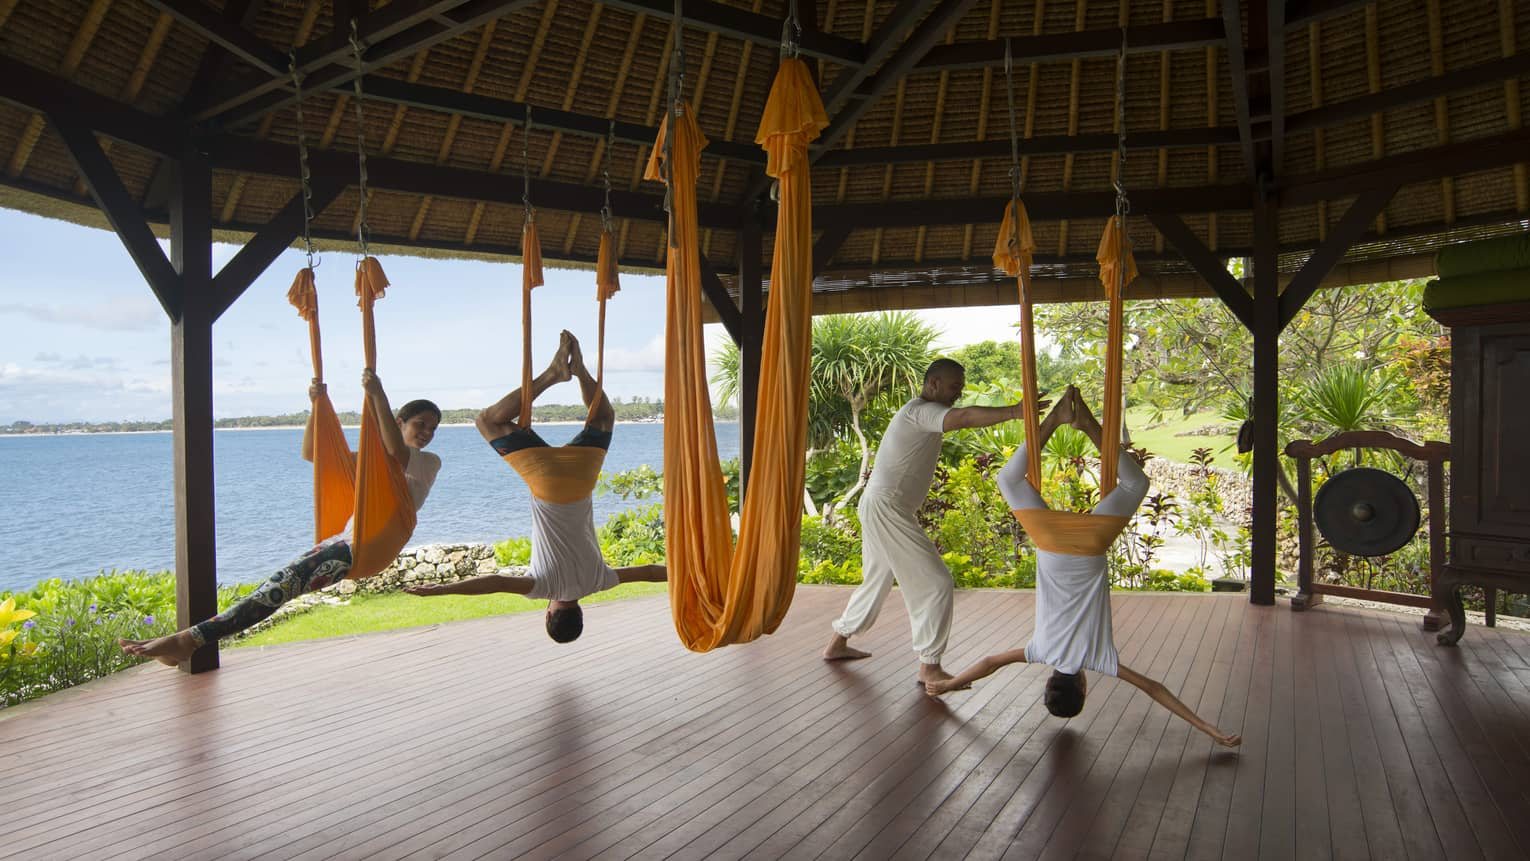 Guests hang from the ceiling as they are guided through rope yoga in an outdoor pavilion